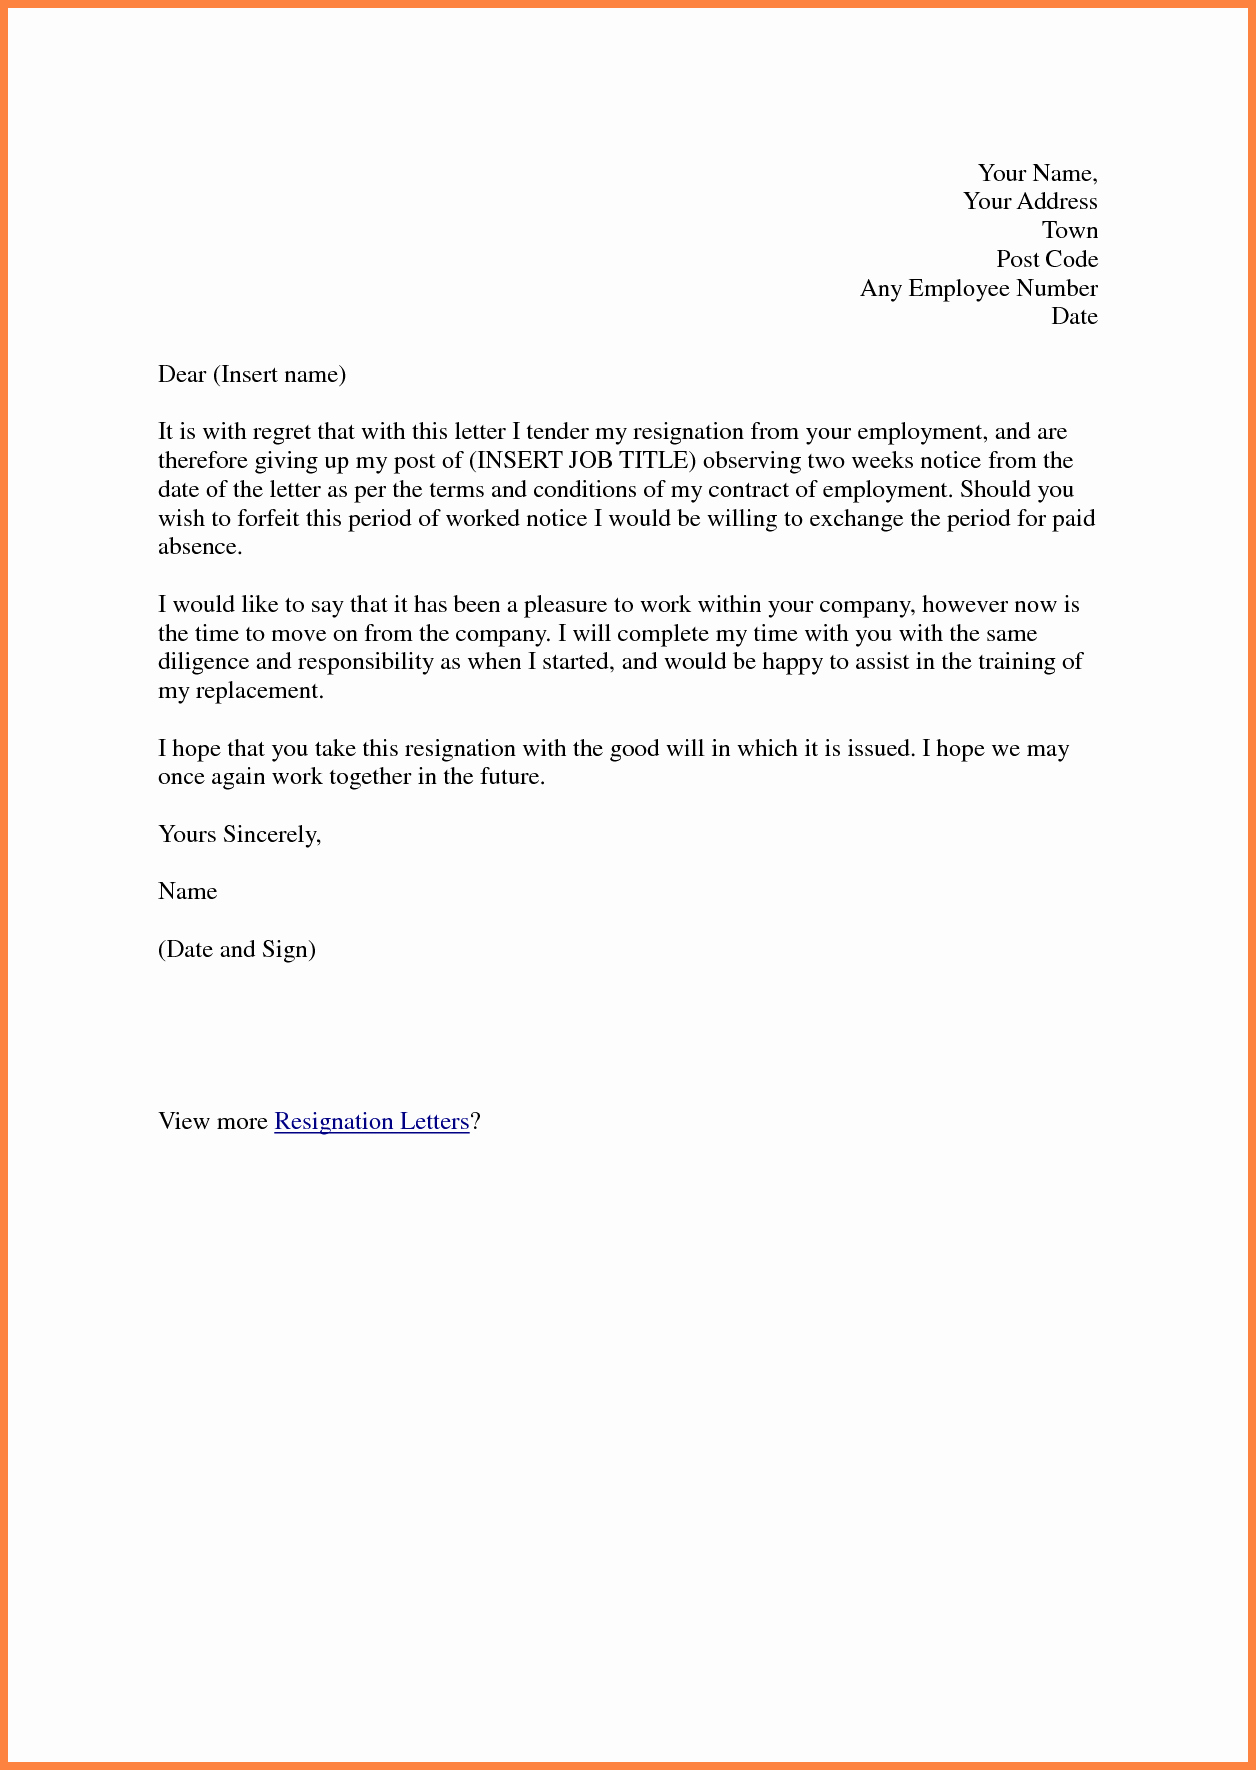 Resignation Letter 2 Week Notice Fresh 6 Sample Of Resignation Letter Two Weeks Notice